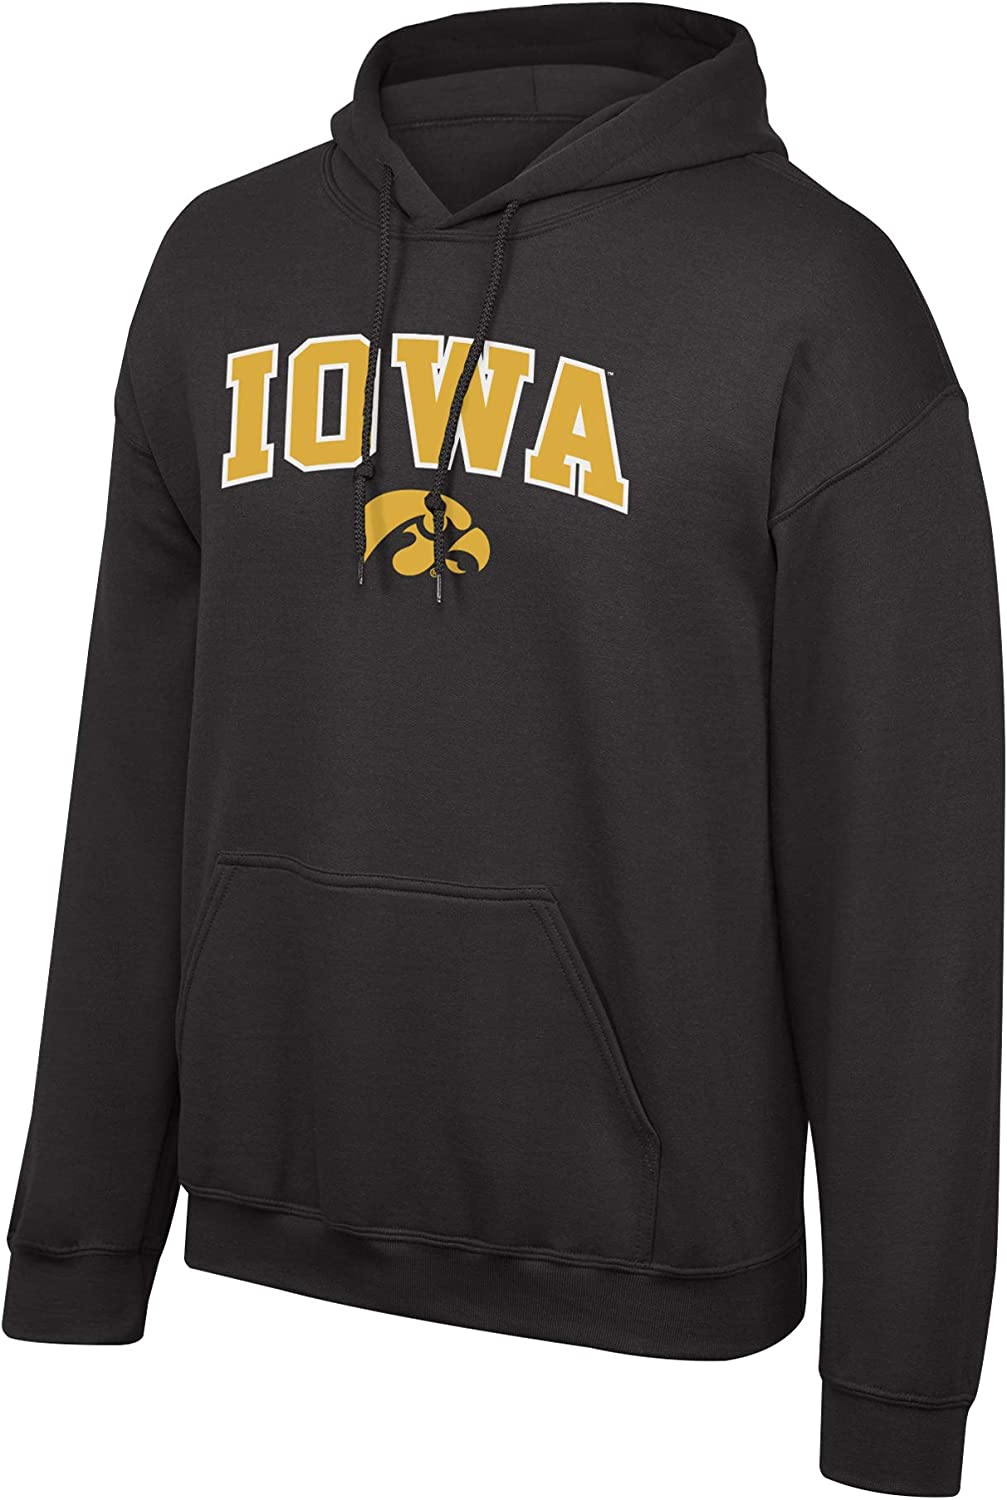 Elite Fan Shop NCAA Mens Hoodie Sweatshirt Team Color Arch